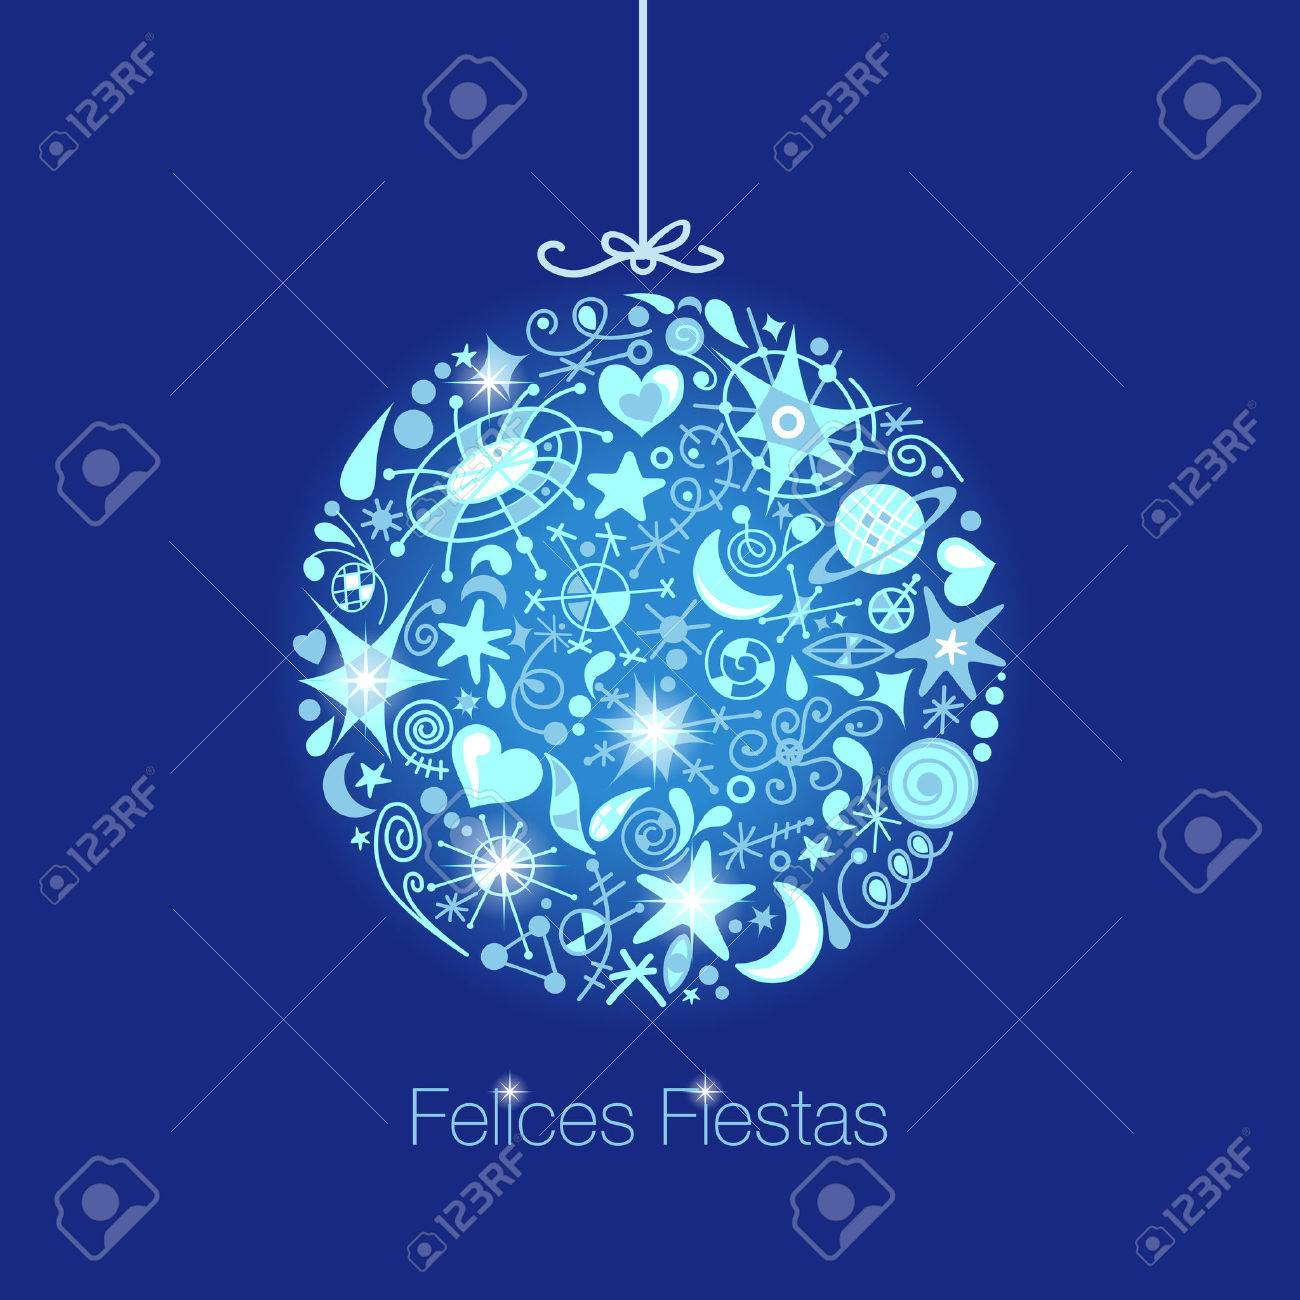 Spanish Christmas Card Royalty Free Cliparts, Vectors, And Stock ...